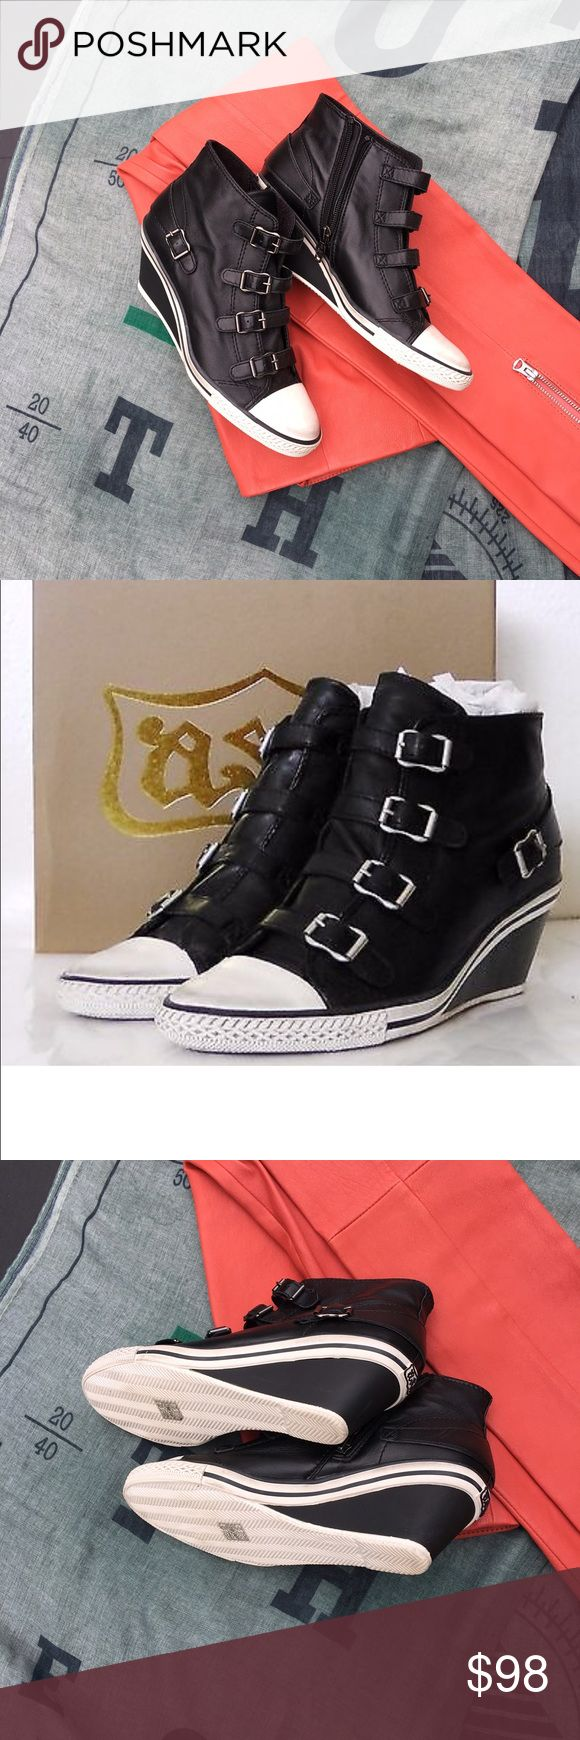 ASH Genial Black Wedges ASH Genial Woman's Wedges Sneakers Black Leather. Like new. Size: 40 Ash Shoes Wedges